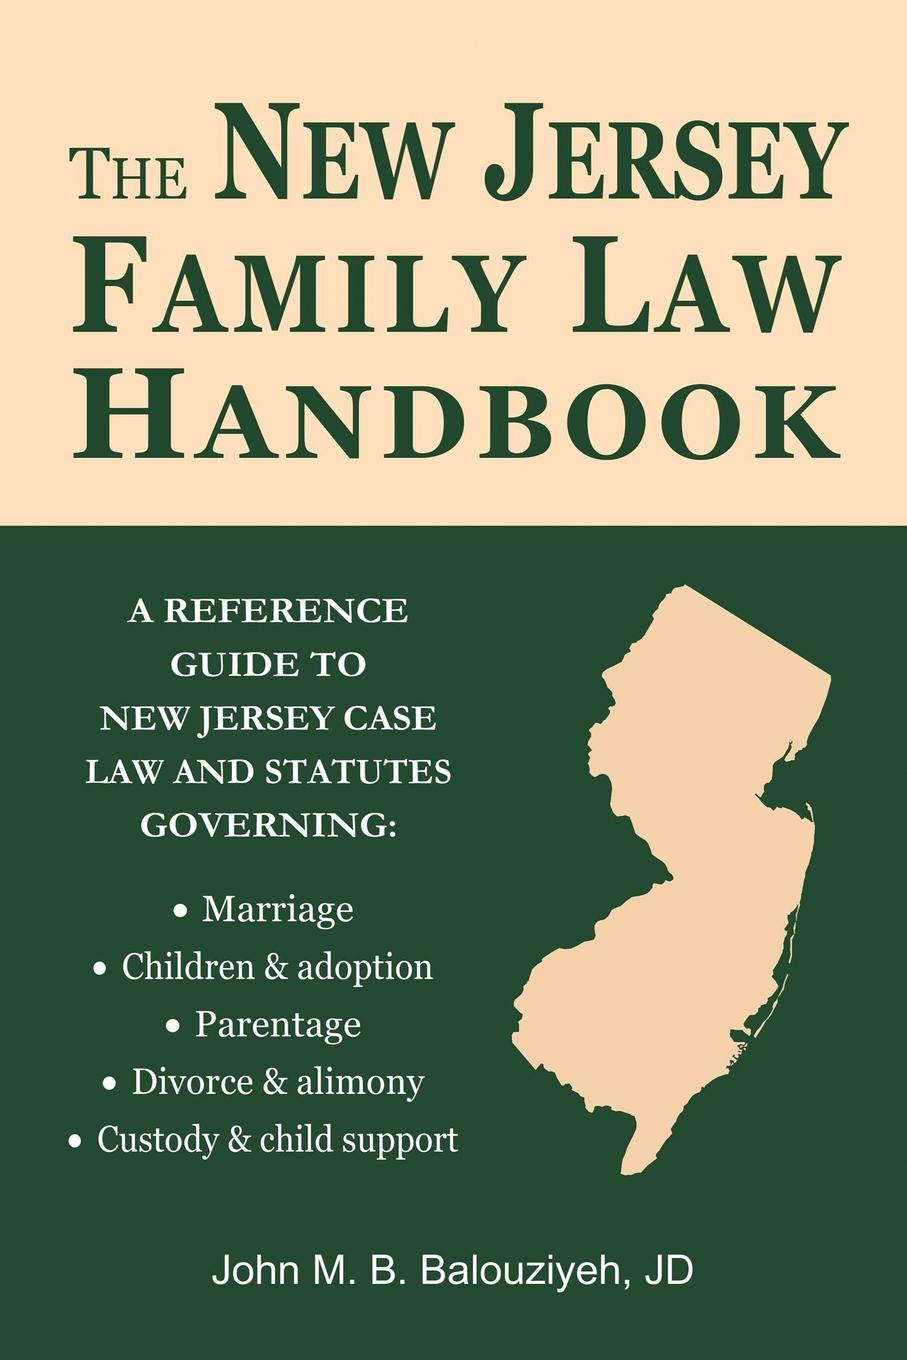 John M. B. Balouziyeh The New Jersey Family Law Handbook. A Reference Guide to New Jersey Case Law and Statutes diplomatic law in a new millennium